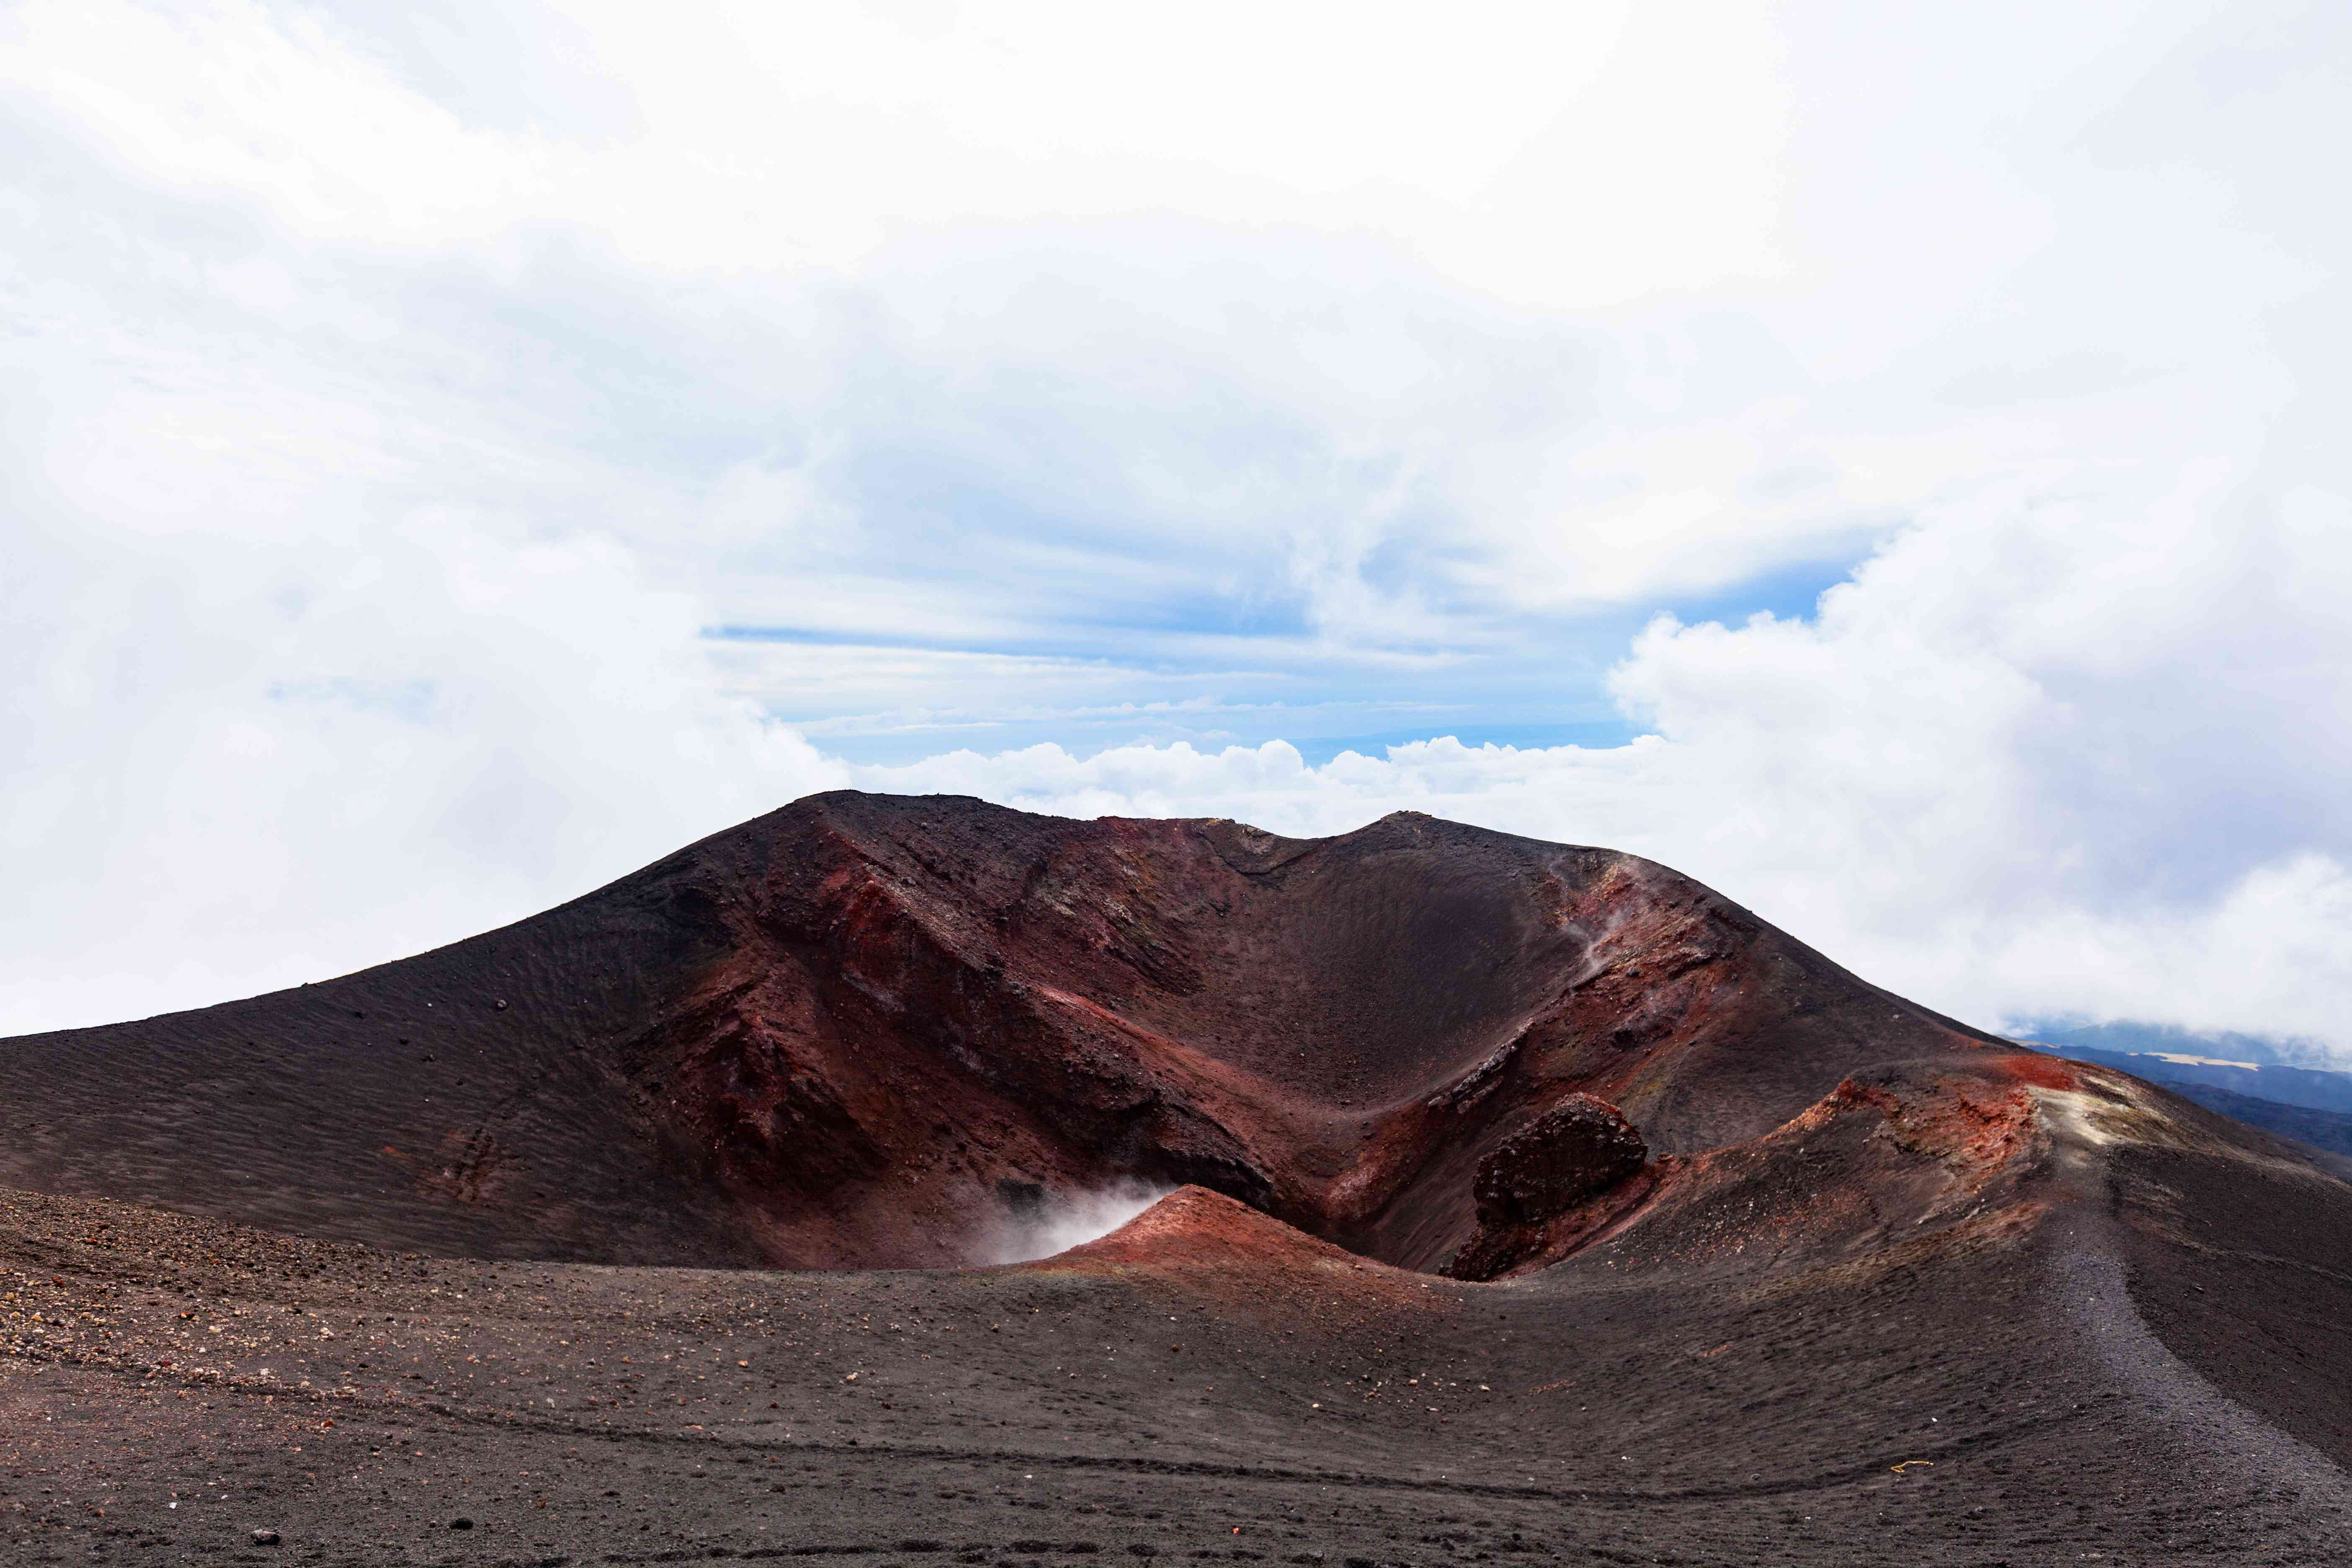 Southeast Crater of Mount Etna, Tallest Active Volcano in Continental Europe, Sicily, Italy